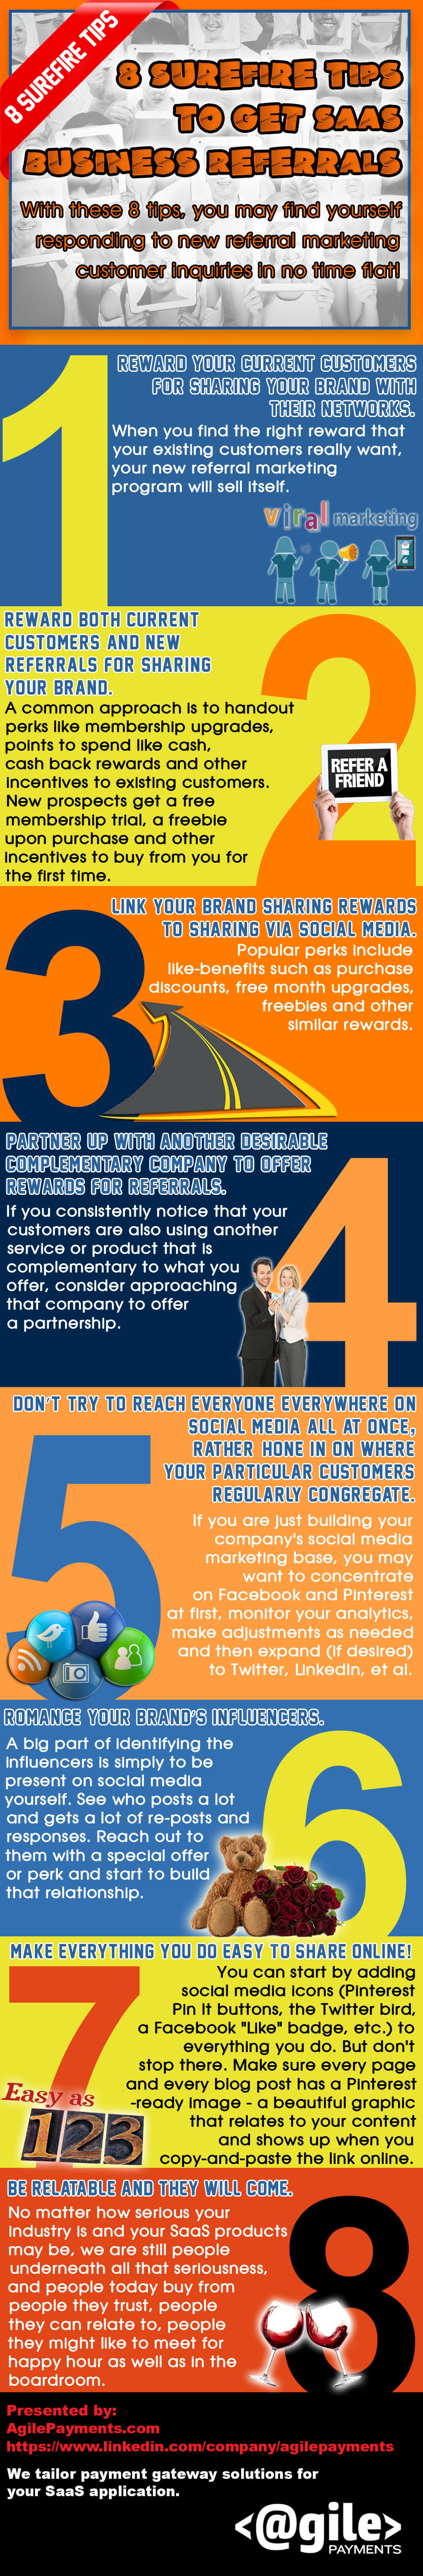 What's the downside of using paid advertising to generate customers for your SaaS?Having to pay for the leads of course! Here's another quick question for you: How effective are you in generating good referrals from your customers?  If you're interested in learning how to get more referrals in your business check out this infographic we just created to help you get started. #infographic